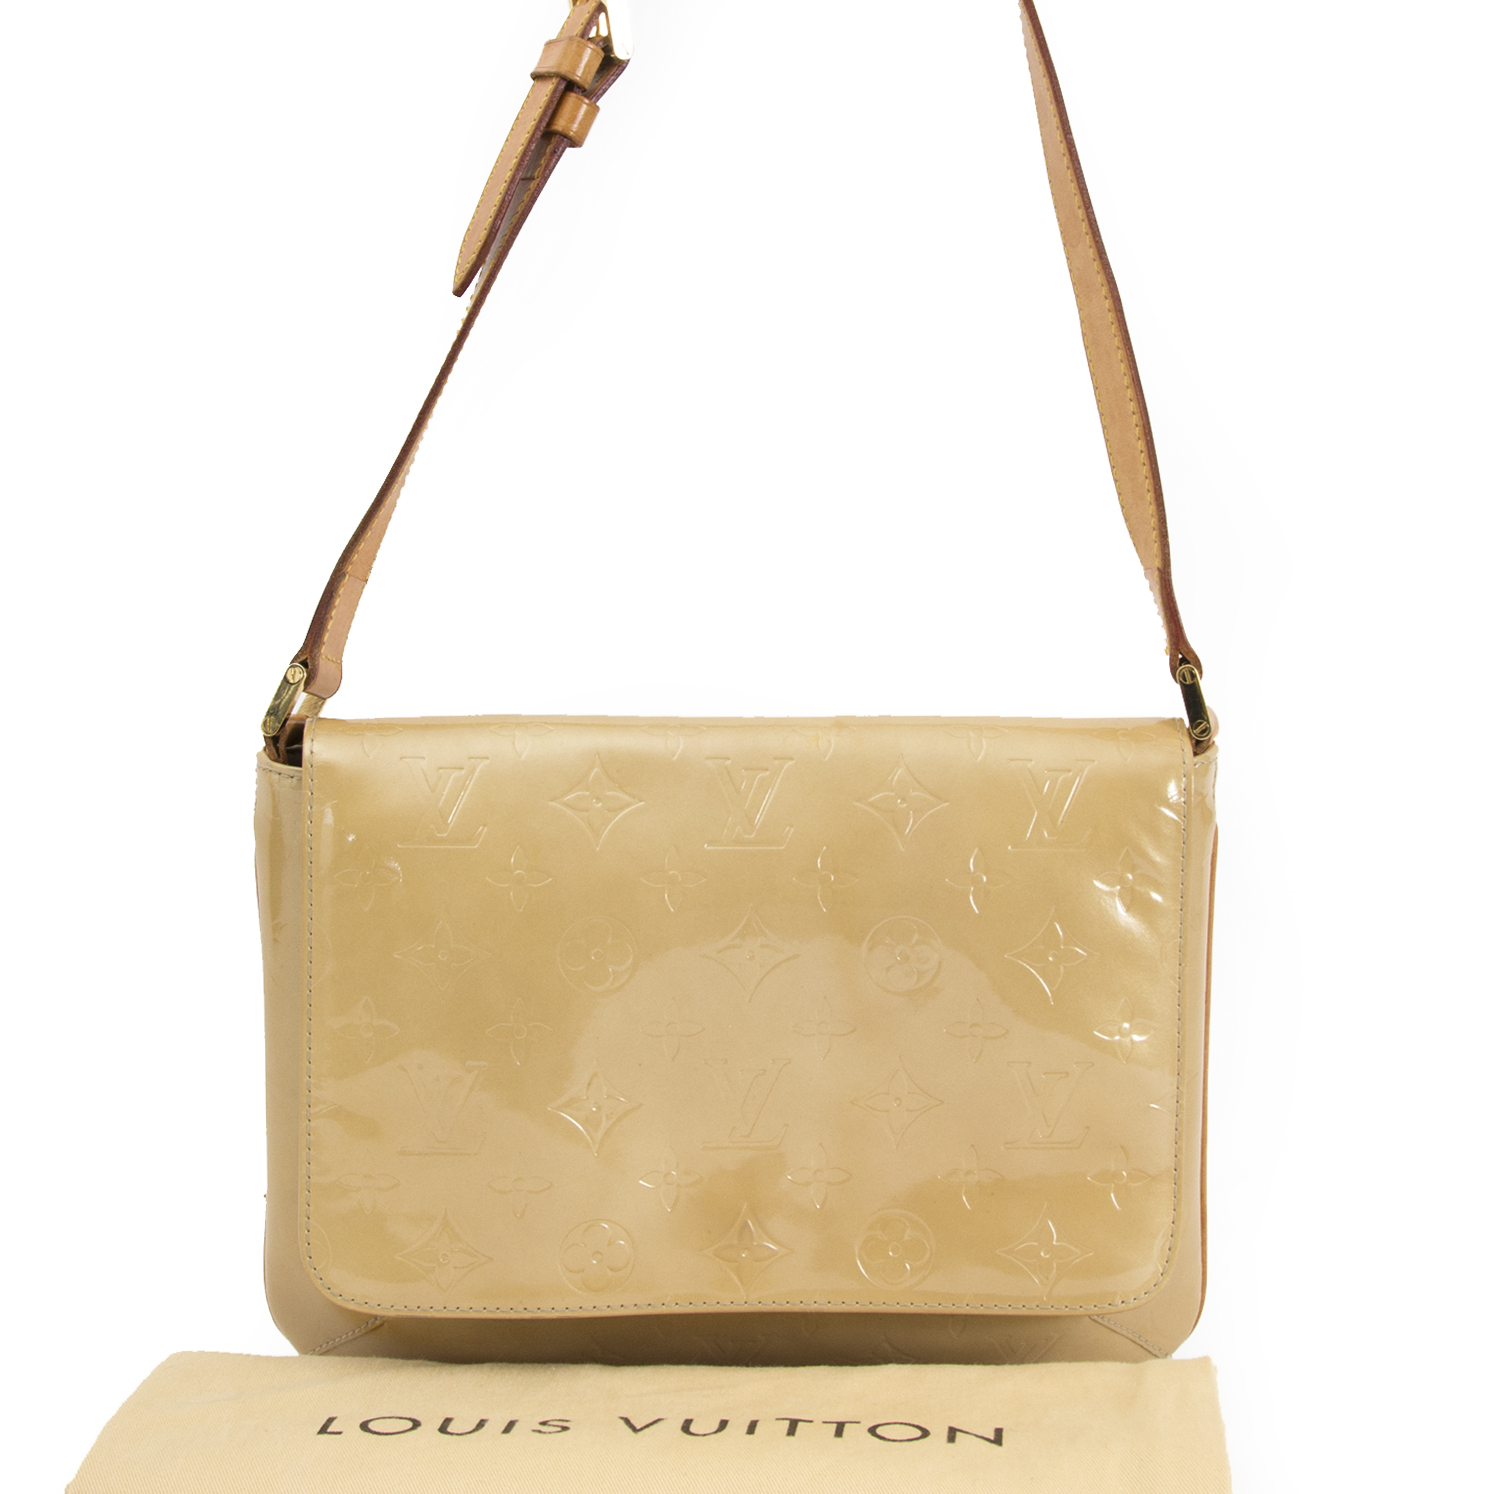 shop safe online your secondhand 	Louis Vuitton Vernis Thompson Street Beige Shoulder Bag